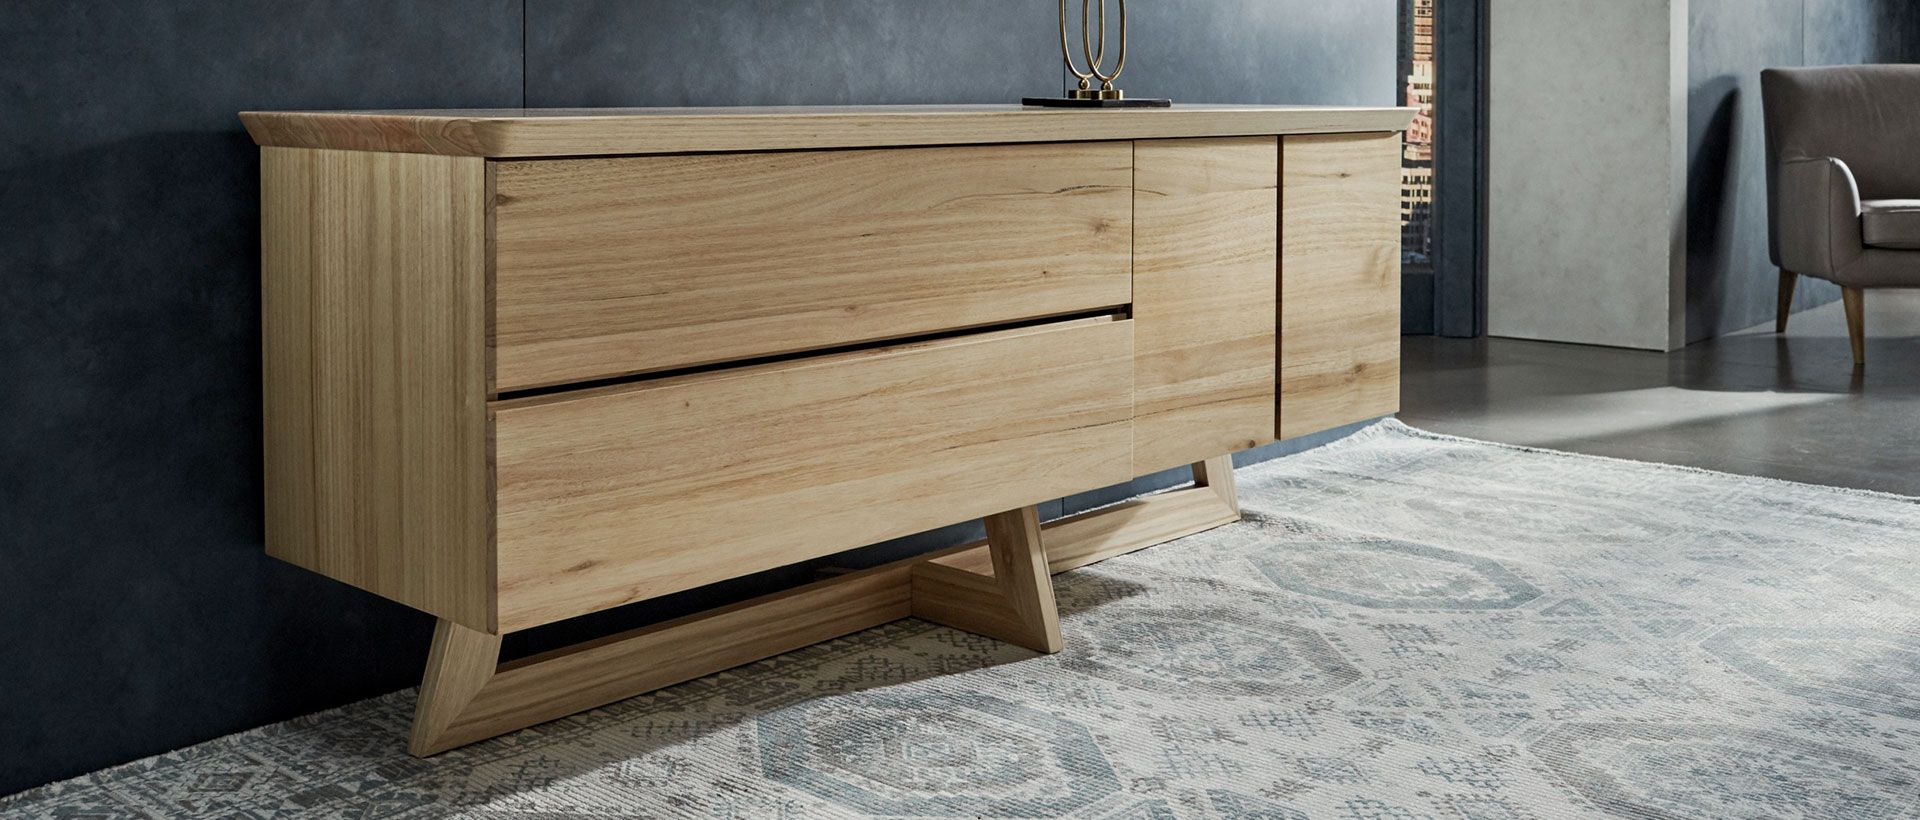 Buffets, Cabinets & Sideboards | Nick Scali In Contemporary Wooden Buffets With One Side Door Storage Cabinets And Two Drawers (View 20 of 30)